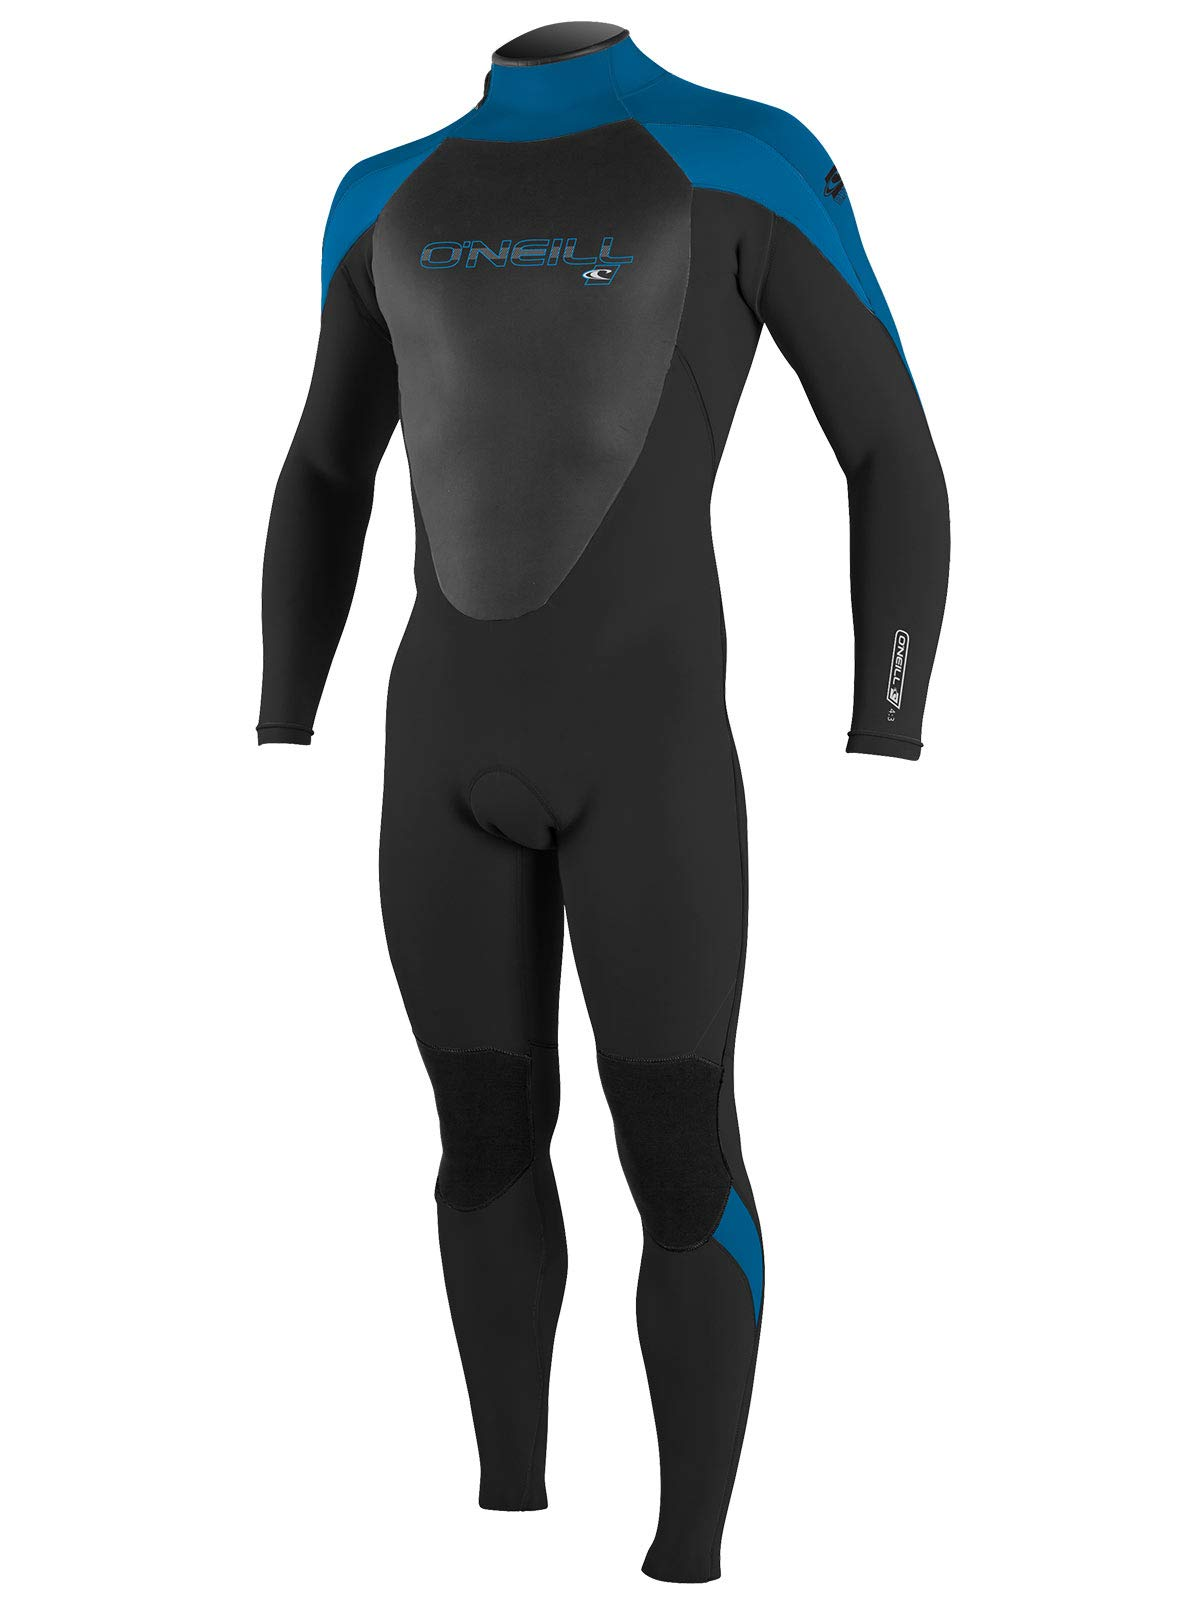 O'Neill Men's Epic 4/3mm Full Wetsuit XLS Black/Ocean/Brite Blue (4212) by O'Neill Wetsuits